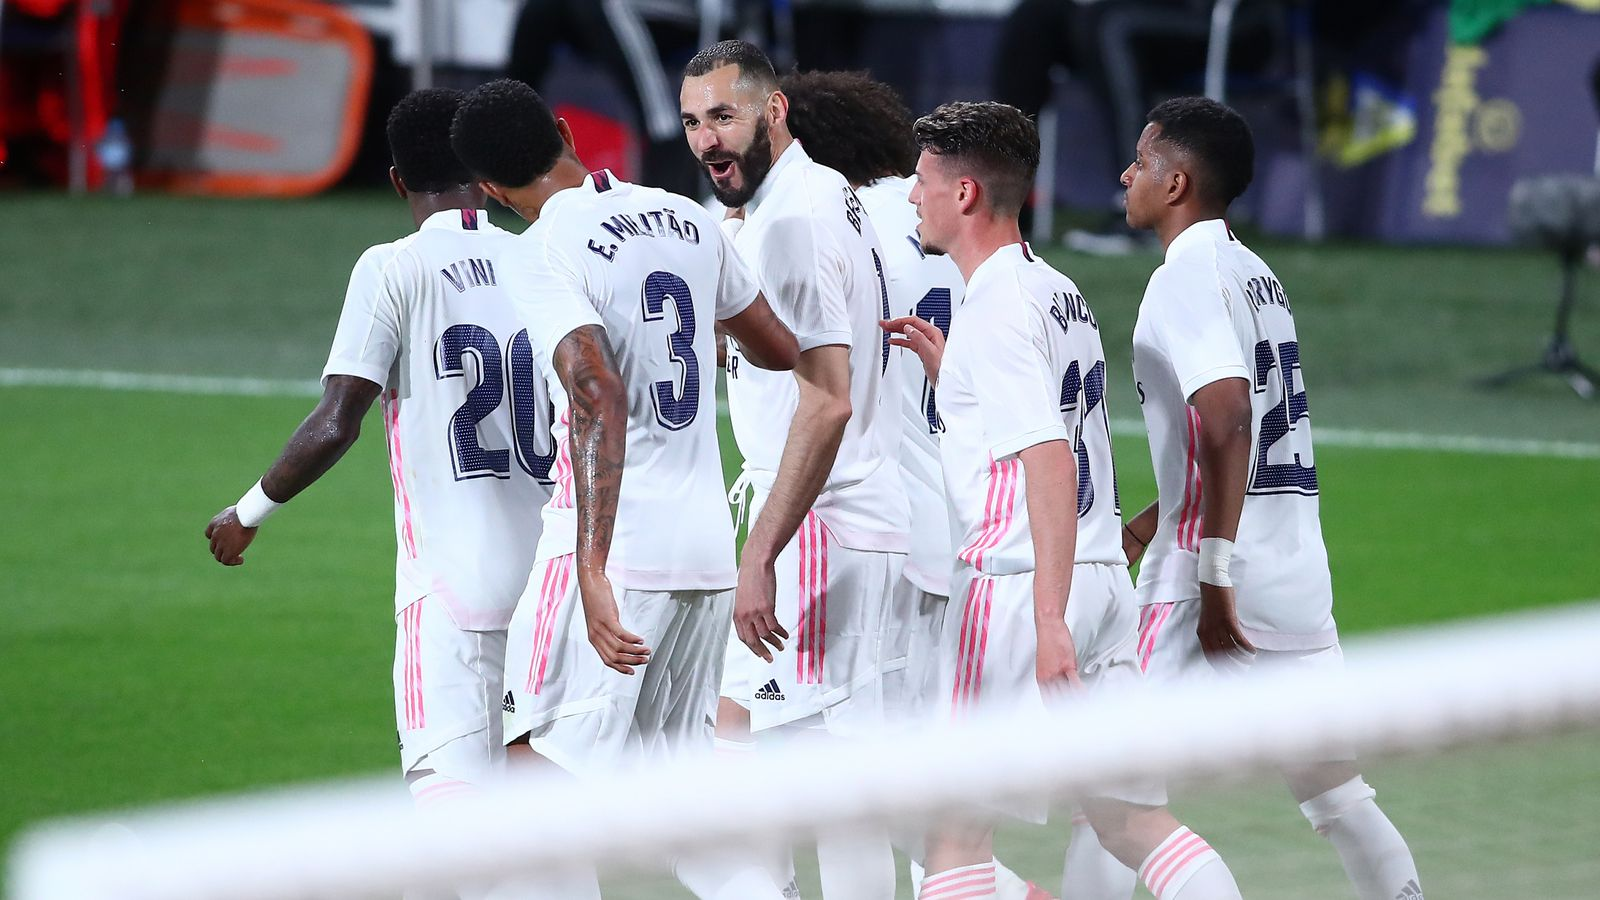 Real Madrid move top of La Liga, Inter Milan 10 clear in Serie A, Borussia Dortmund stay in Champions League hunt - European football round-up